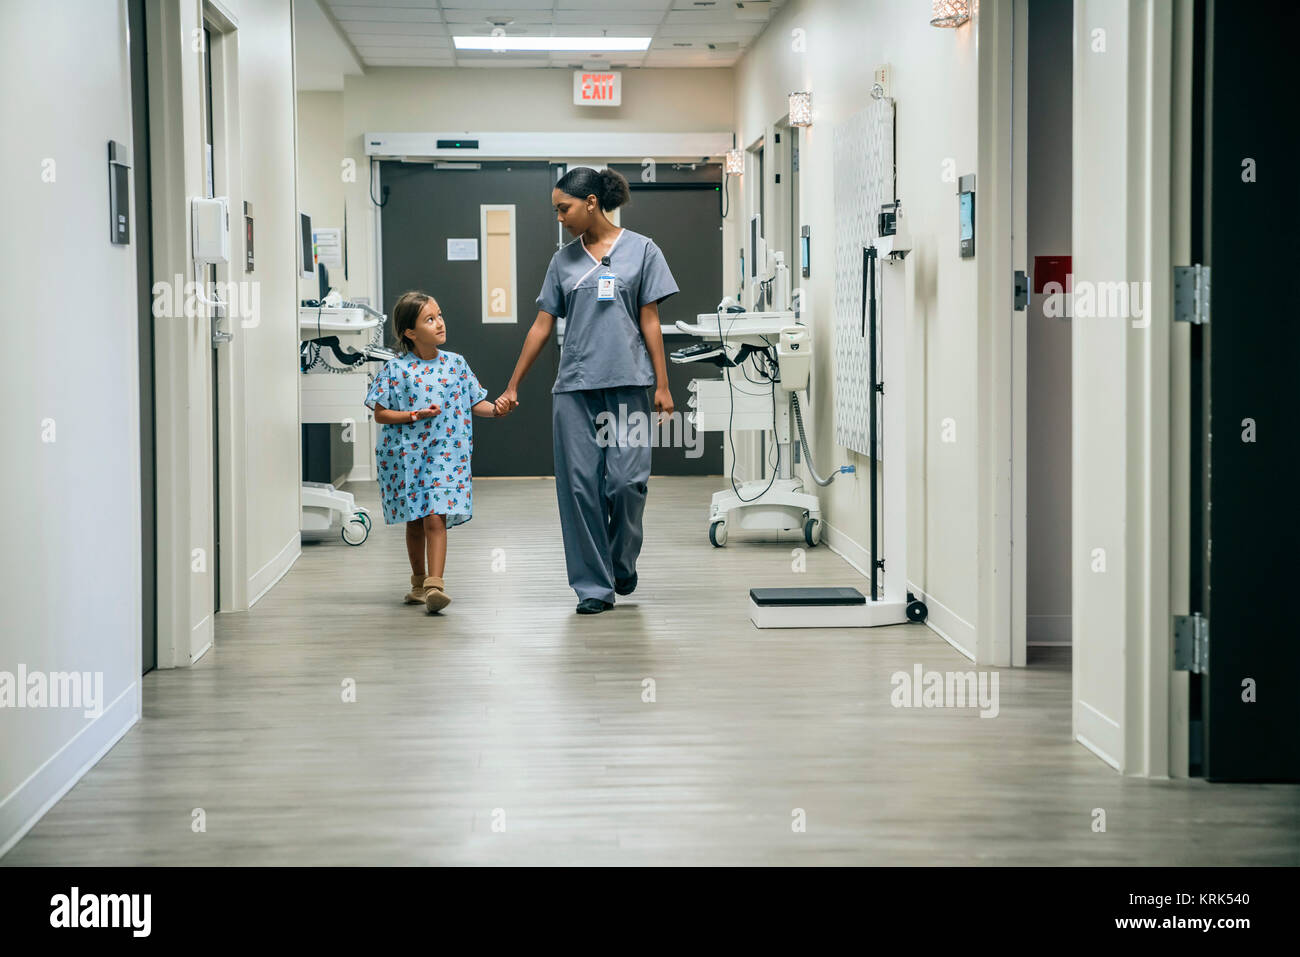 Nurse holding hands with girl in hospital - Stock Image